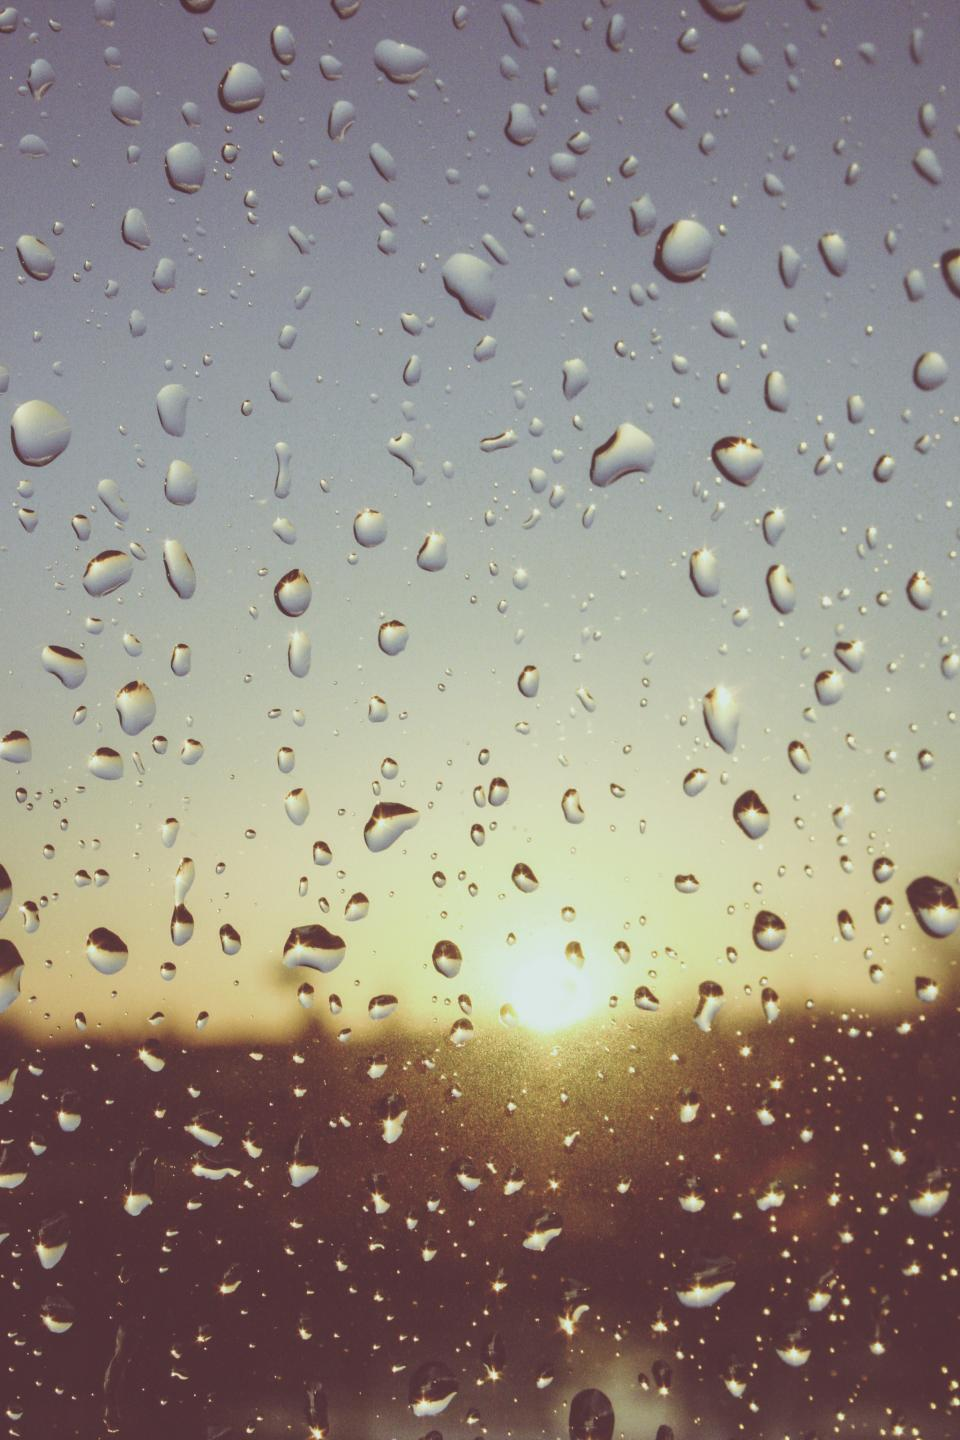 still items things window glass moist water droplets condense sunrise sunset view